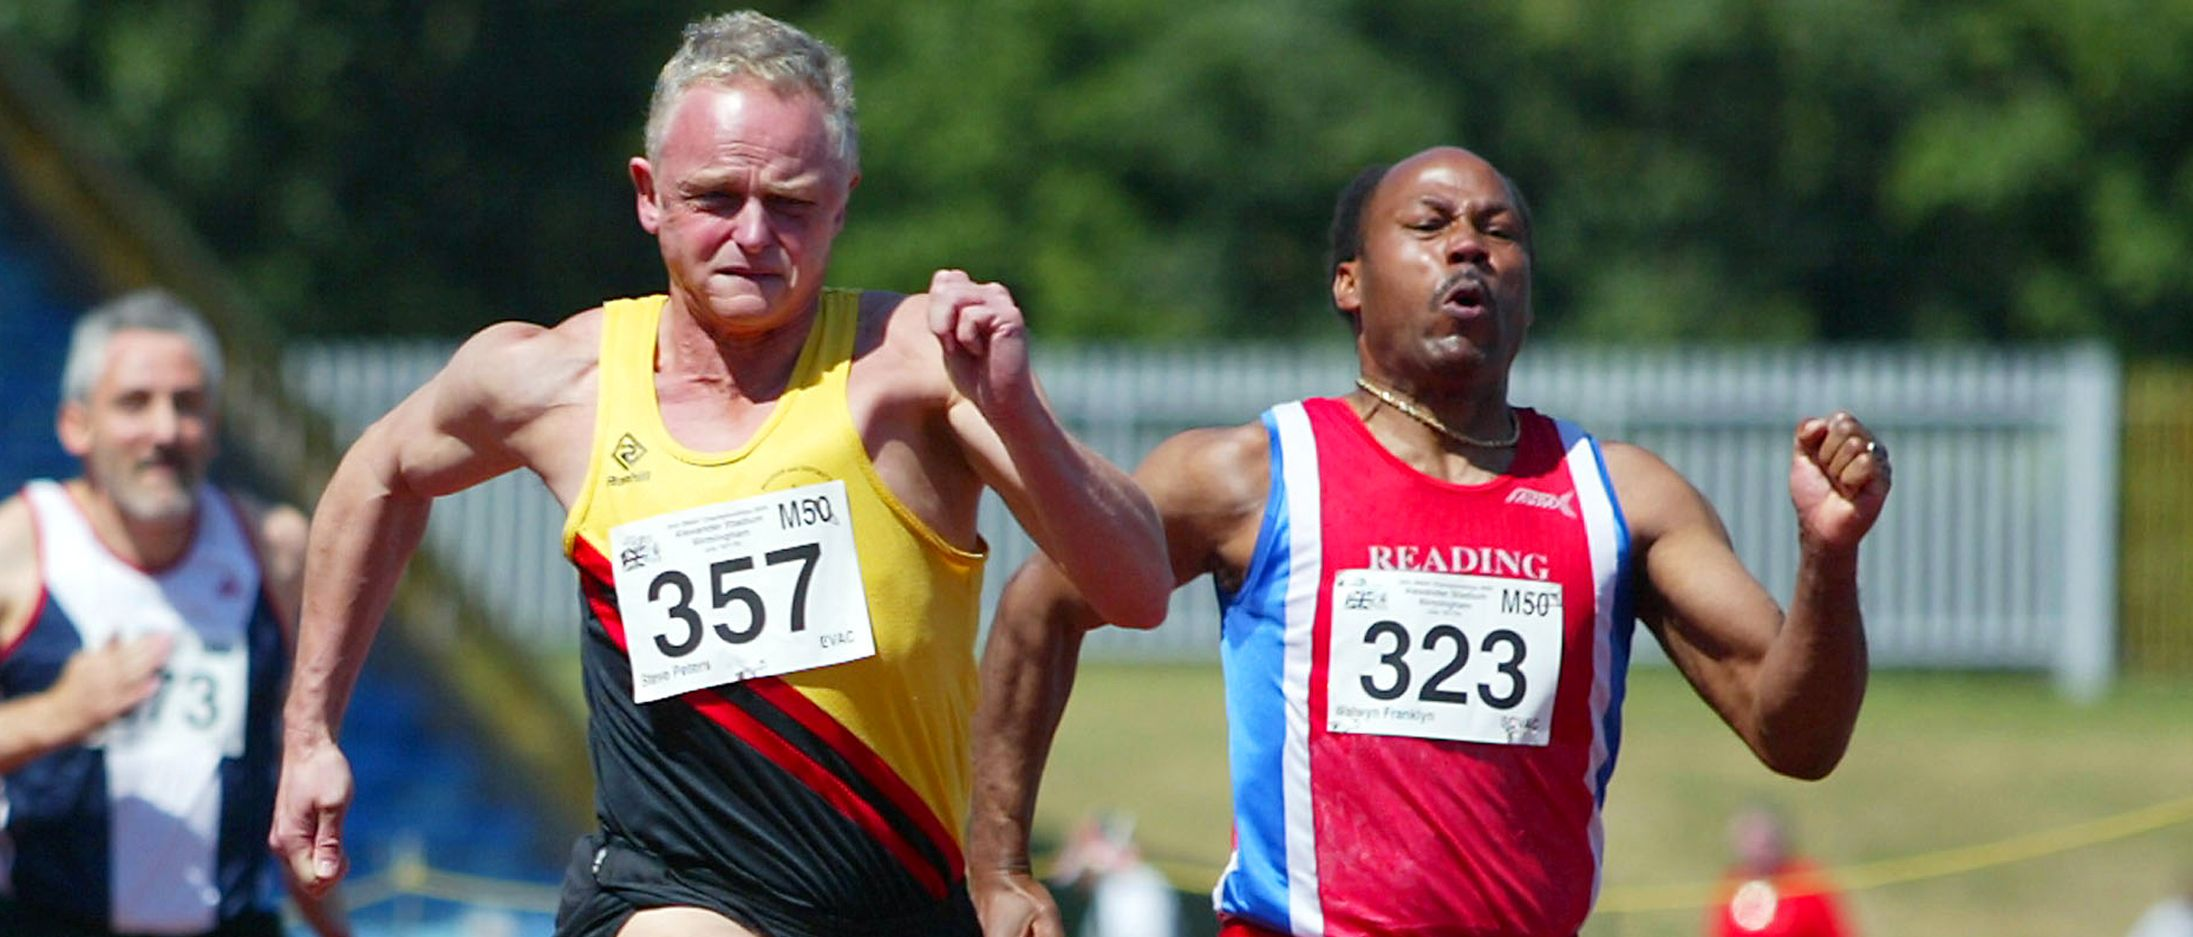 PETERS,STEVE-100m-B'ham7.05 - cropped